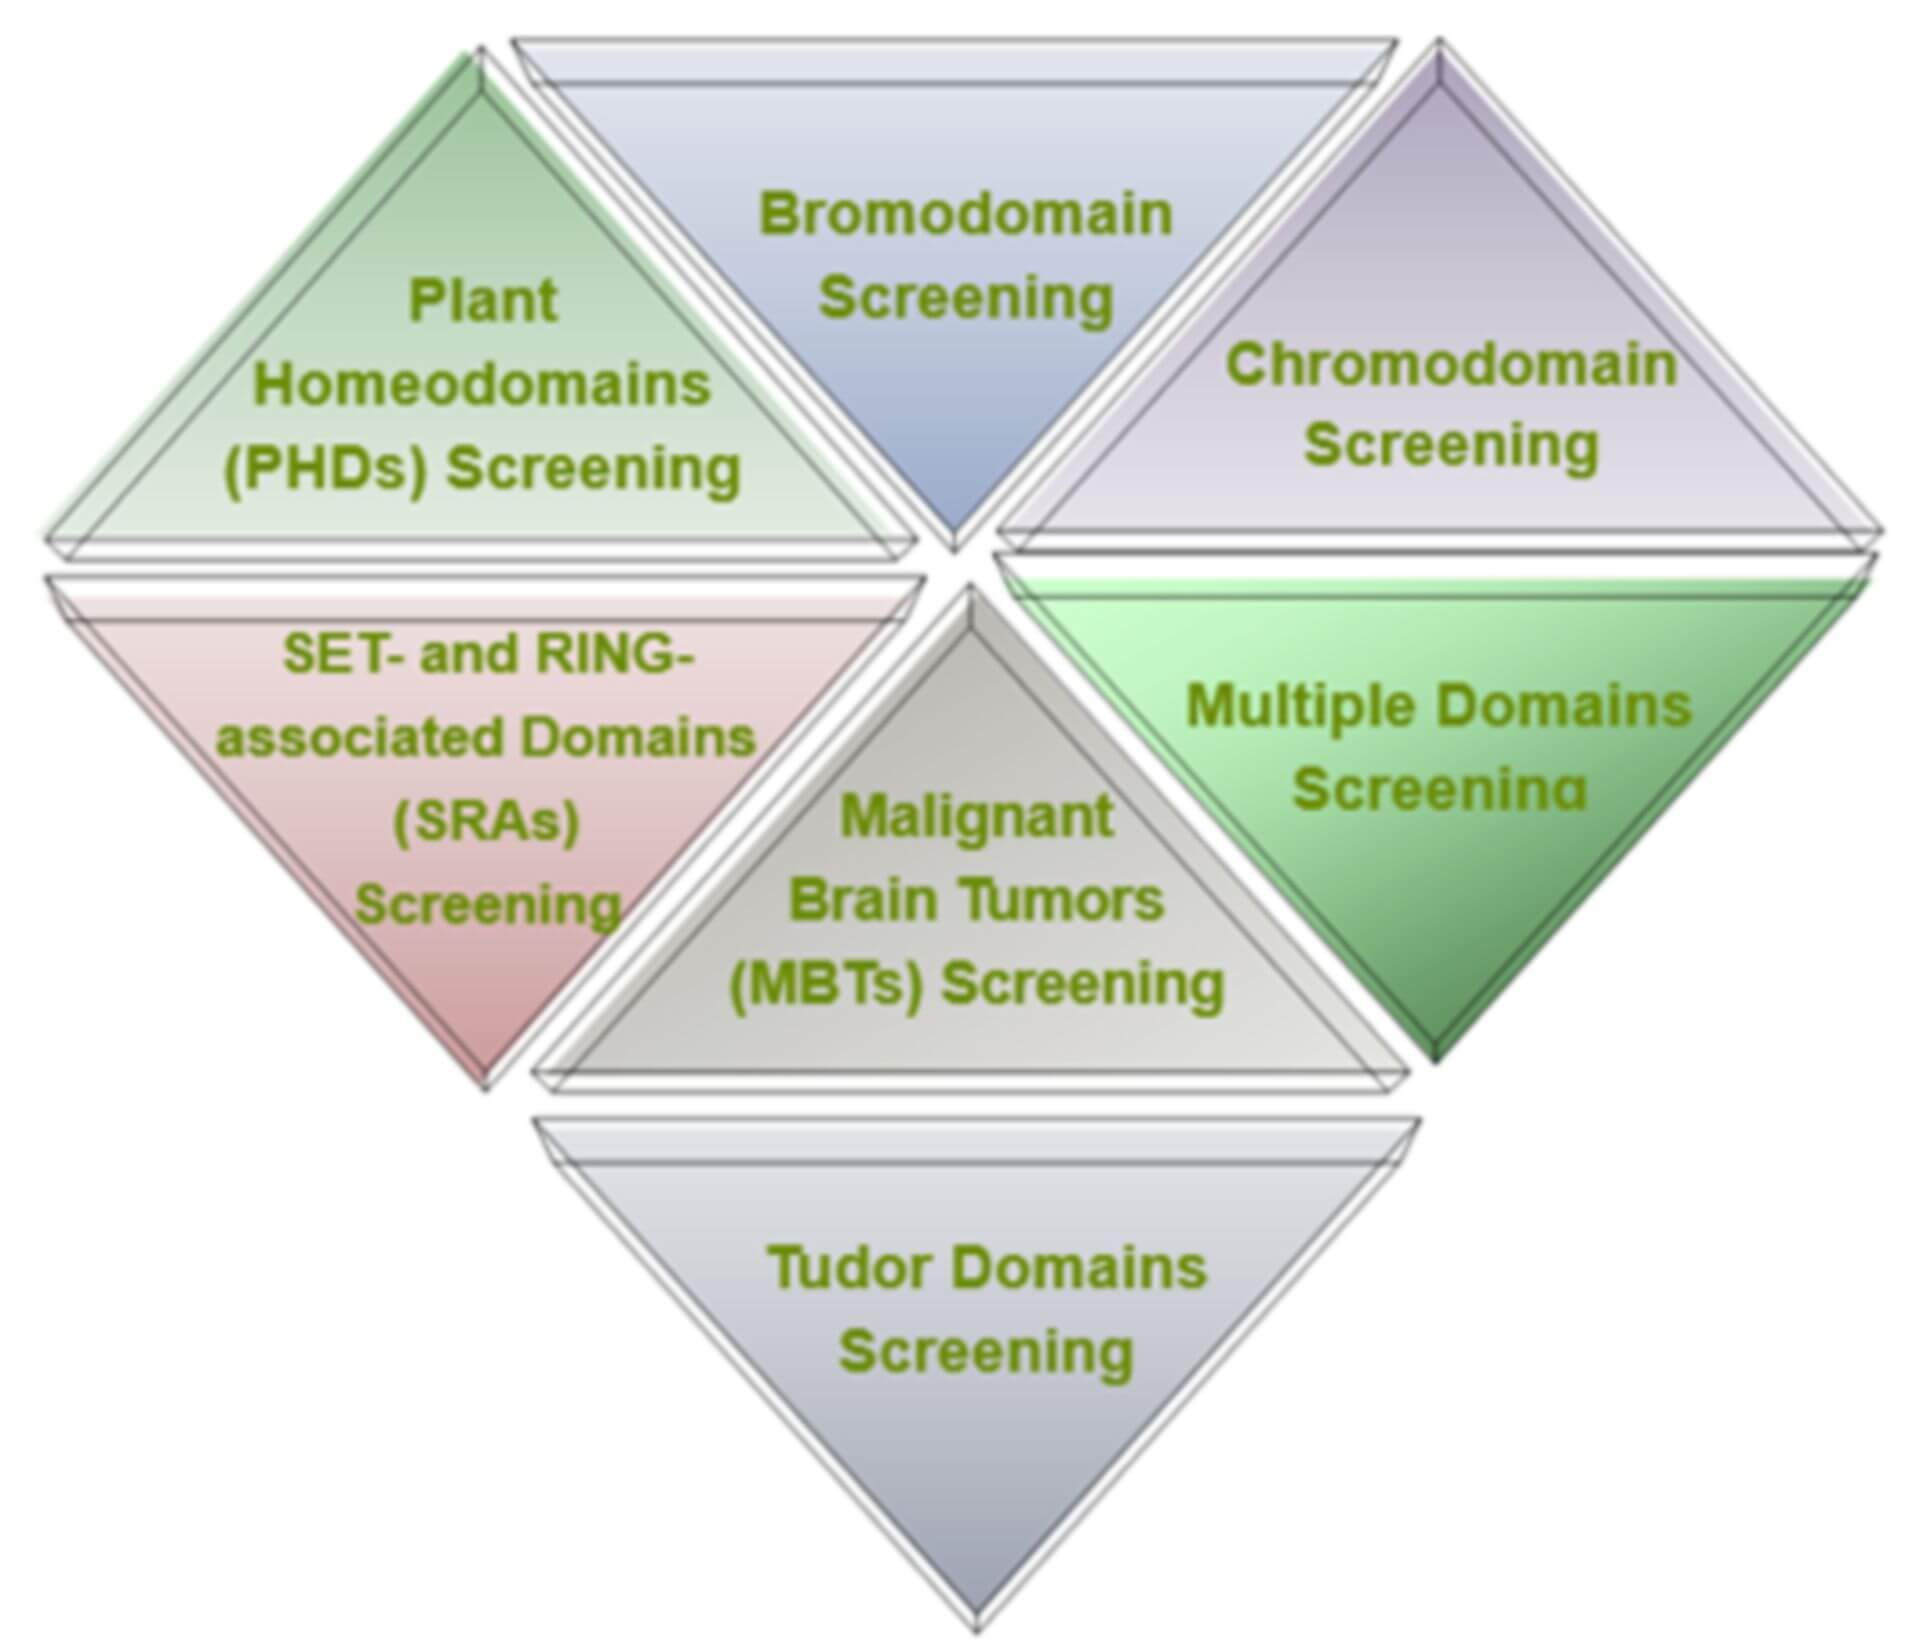 Plant Homeodomain Inhibitor Screening